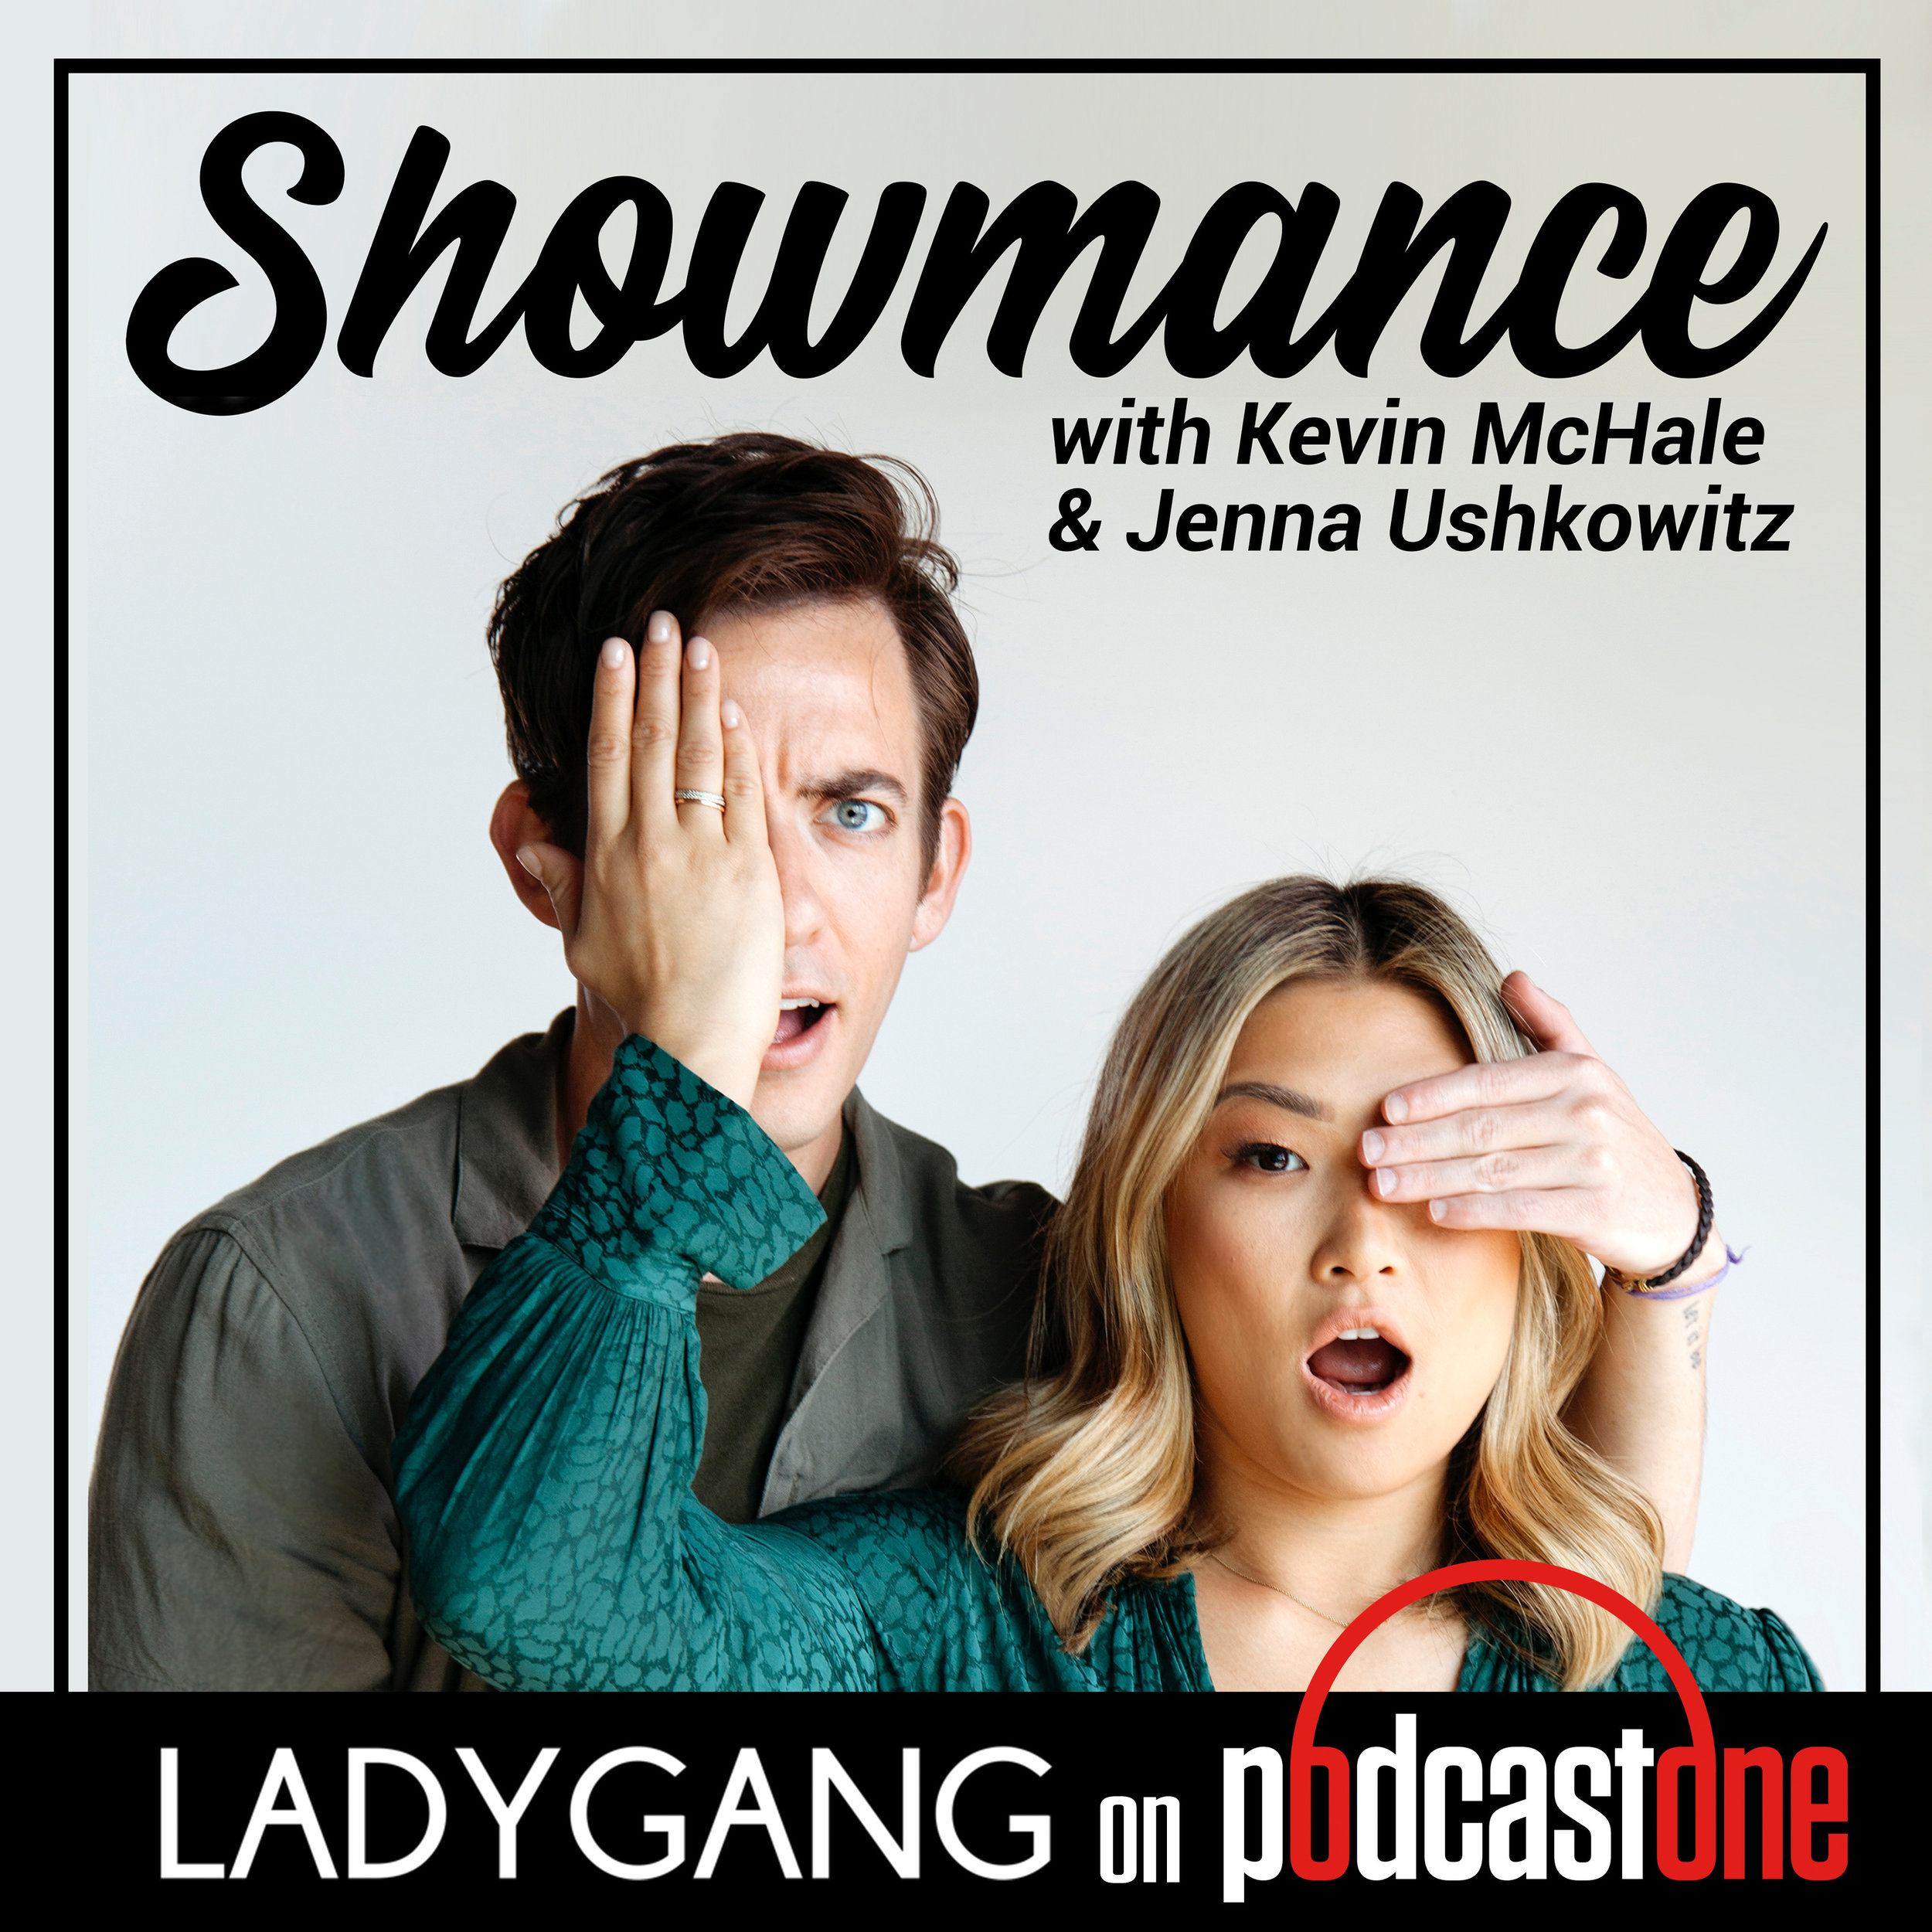 SHOWMANCE - Join former Glee stars and best friends - Jenna Ushkowitz and Kevin McHale - as they interview other dynamic duos and talk work-life balance & maintaining friendships through ALL the wild ups and downs. Jenna and Kevin will also take on listener questions and give advice about their secret obsession... weddings! A huge hit already with national press on Entertainment Tonight, Entertainment Weekly and over 1 million downloads!